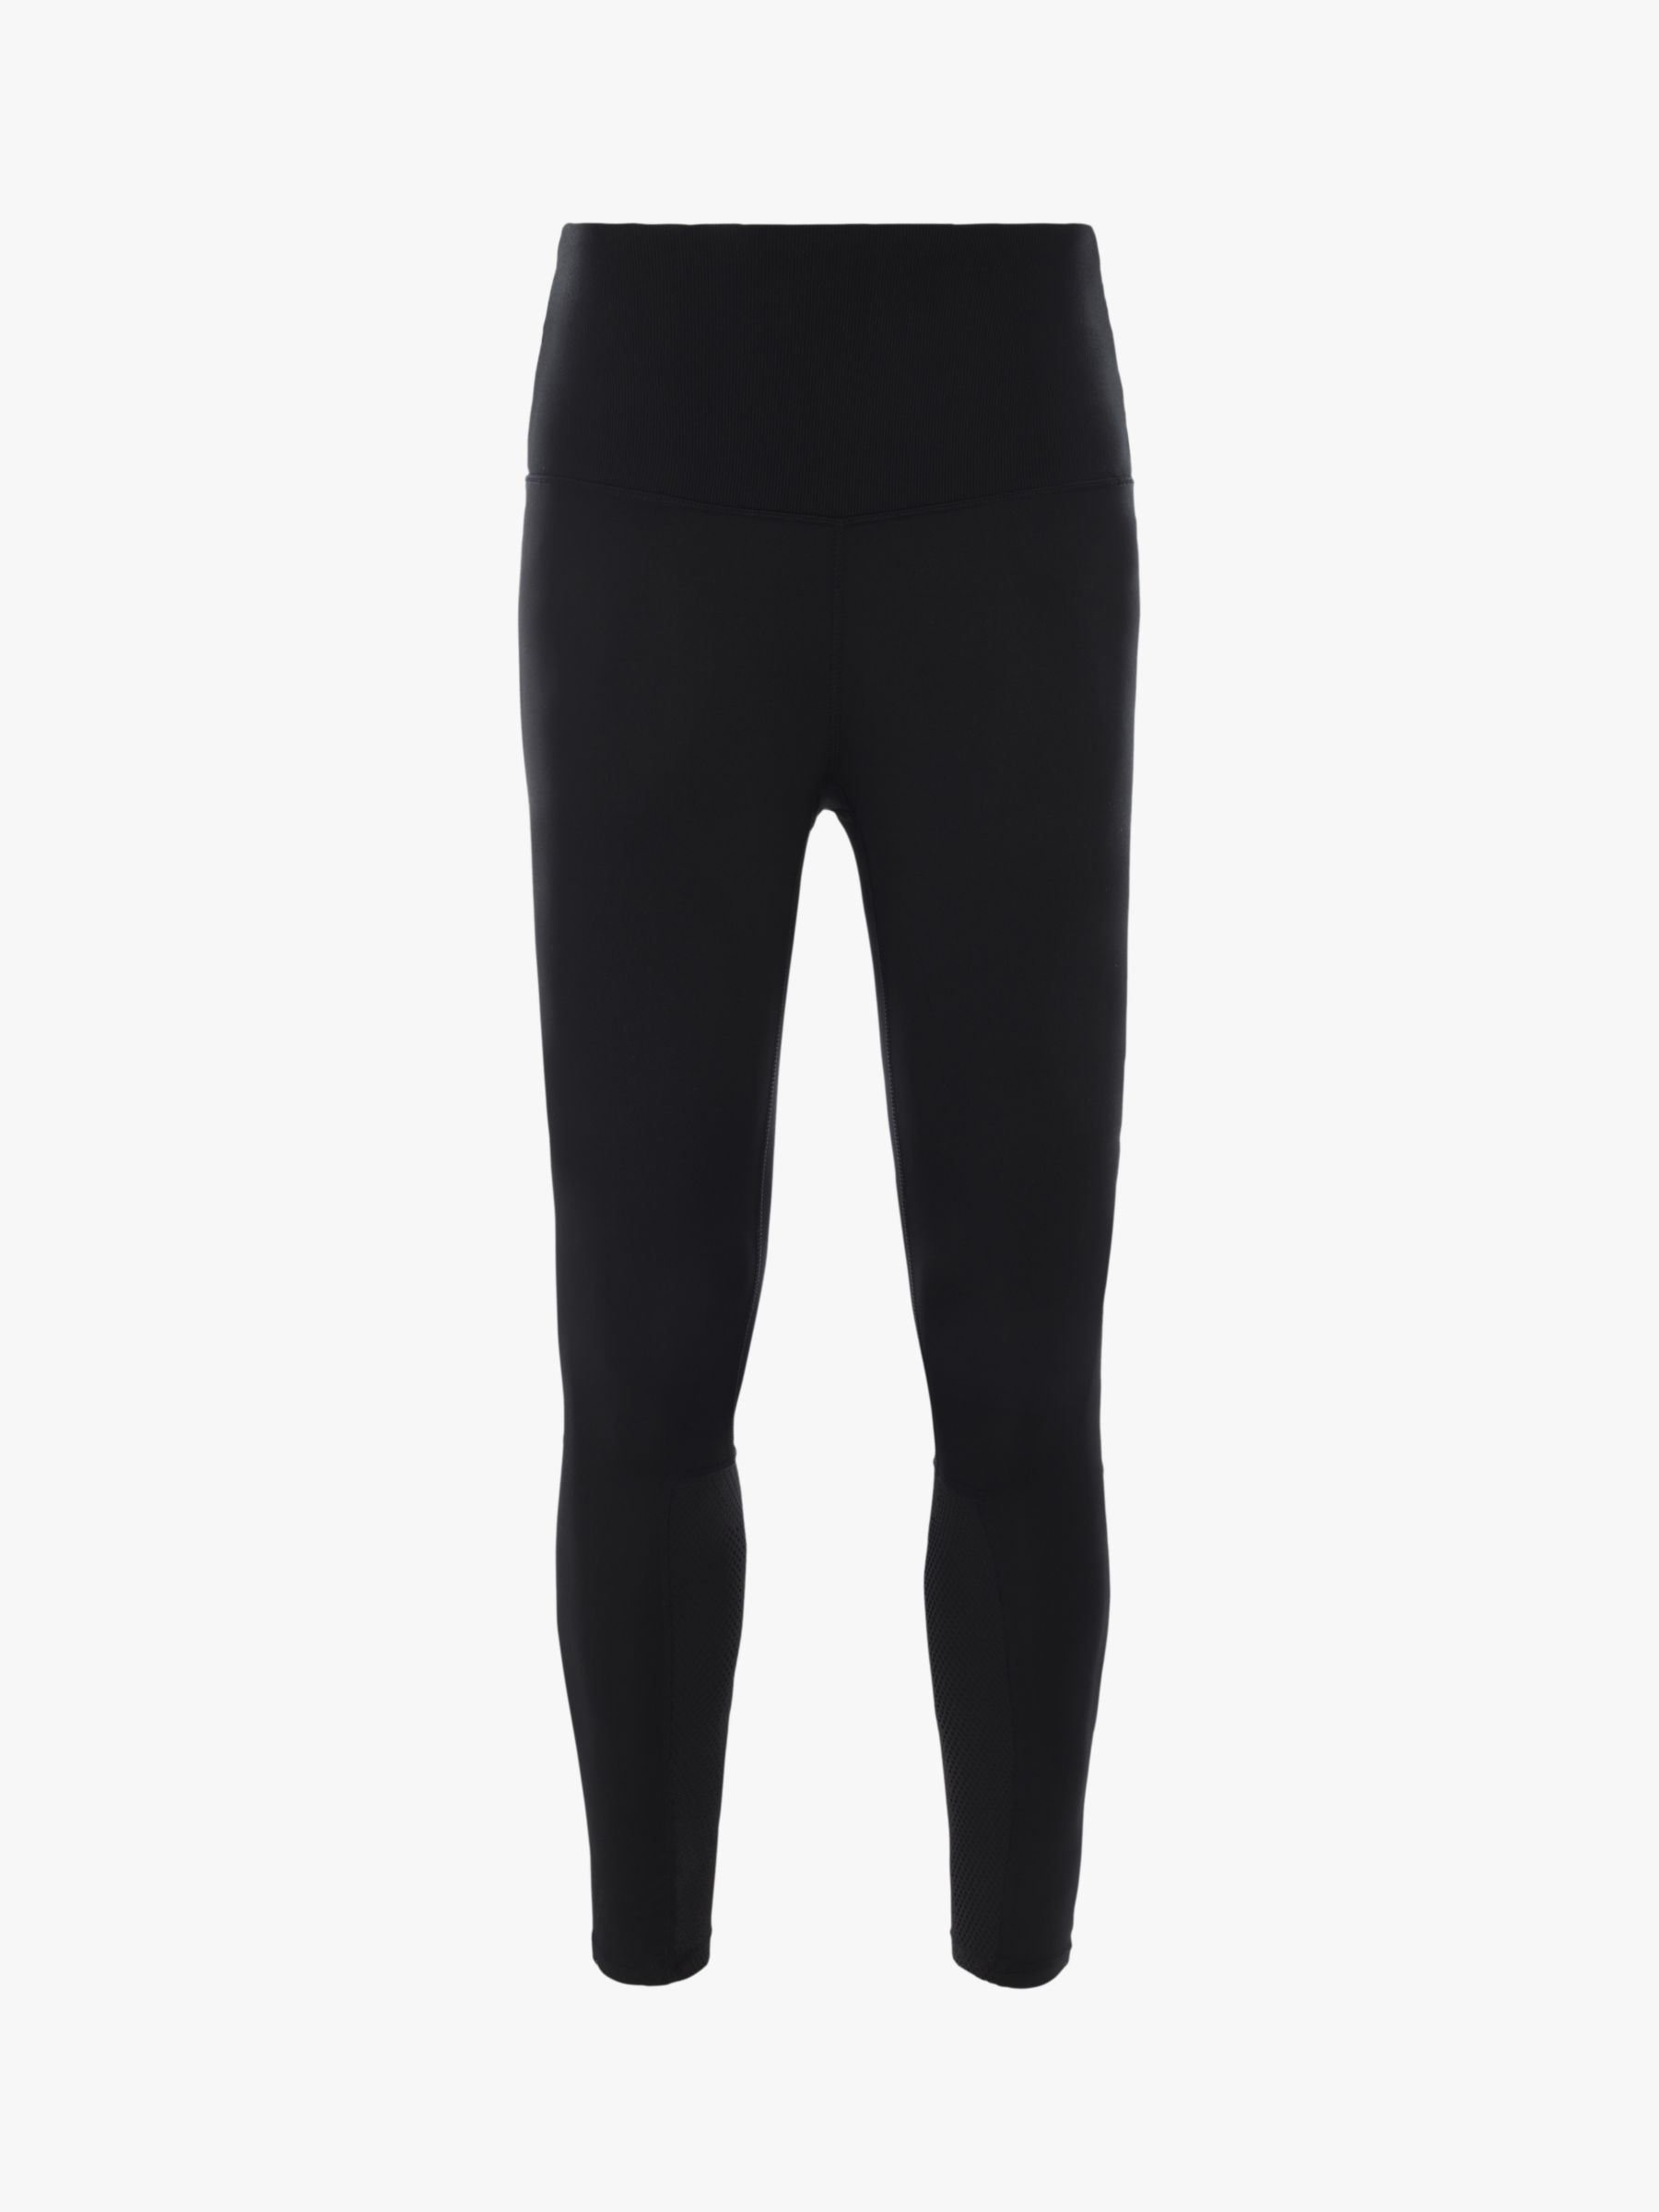 The North Face The North Face Active Trail Mesh High Rise 7/8 Leggings, TNF Black